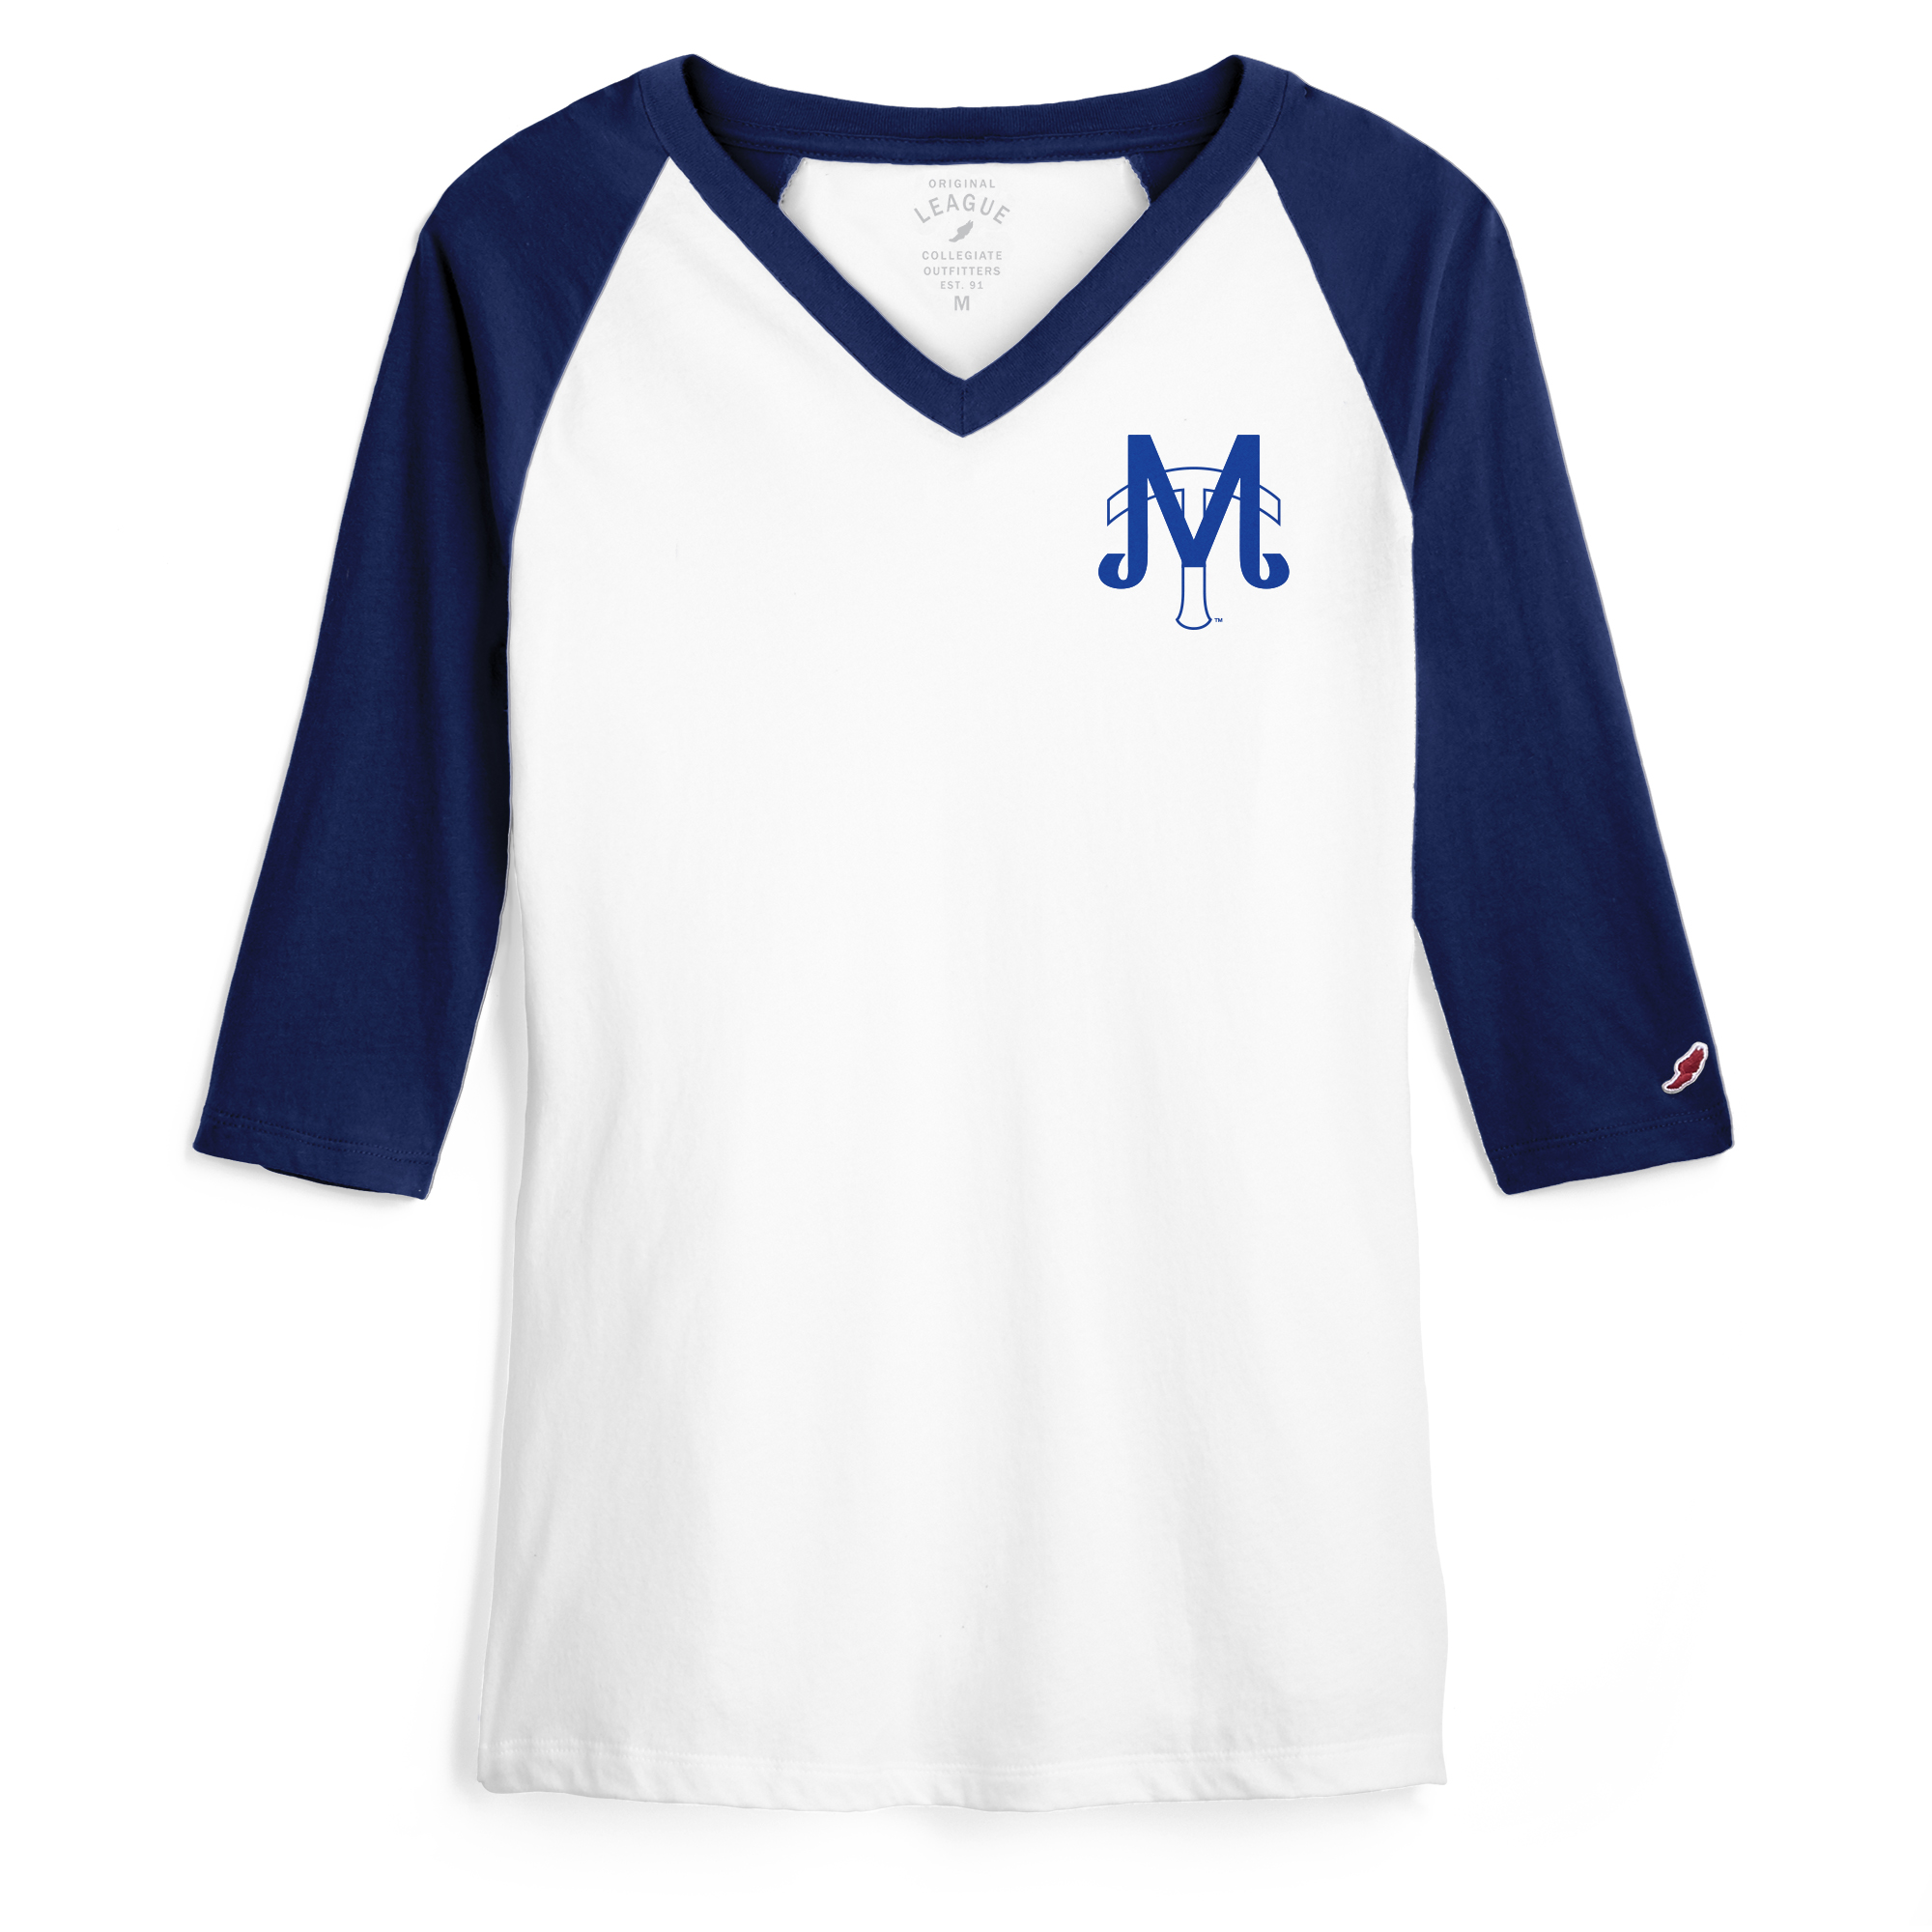 MT Baseball Women's Camp Vneck 3/4 Sleeve Shirt